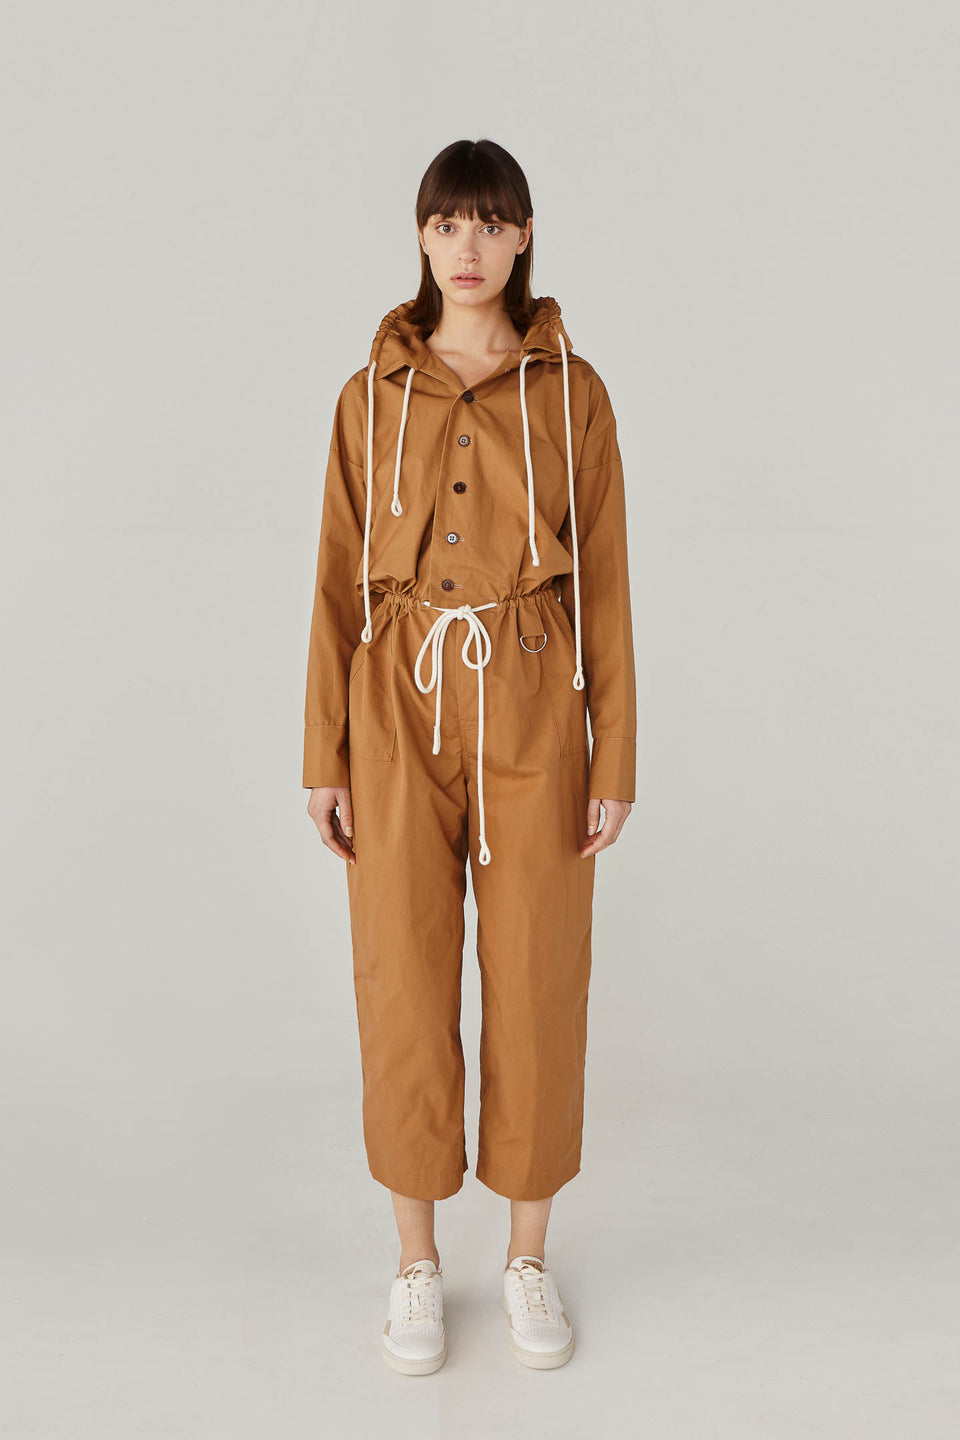 FUNCTIONAL CARAMEL JUMPSUIT